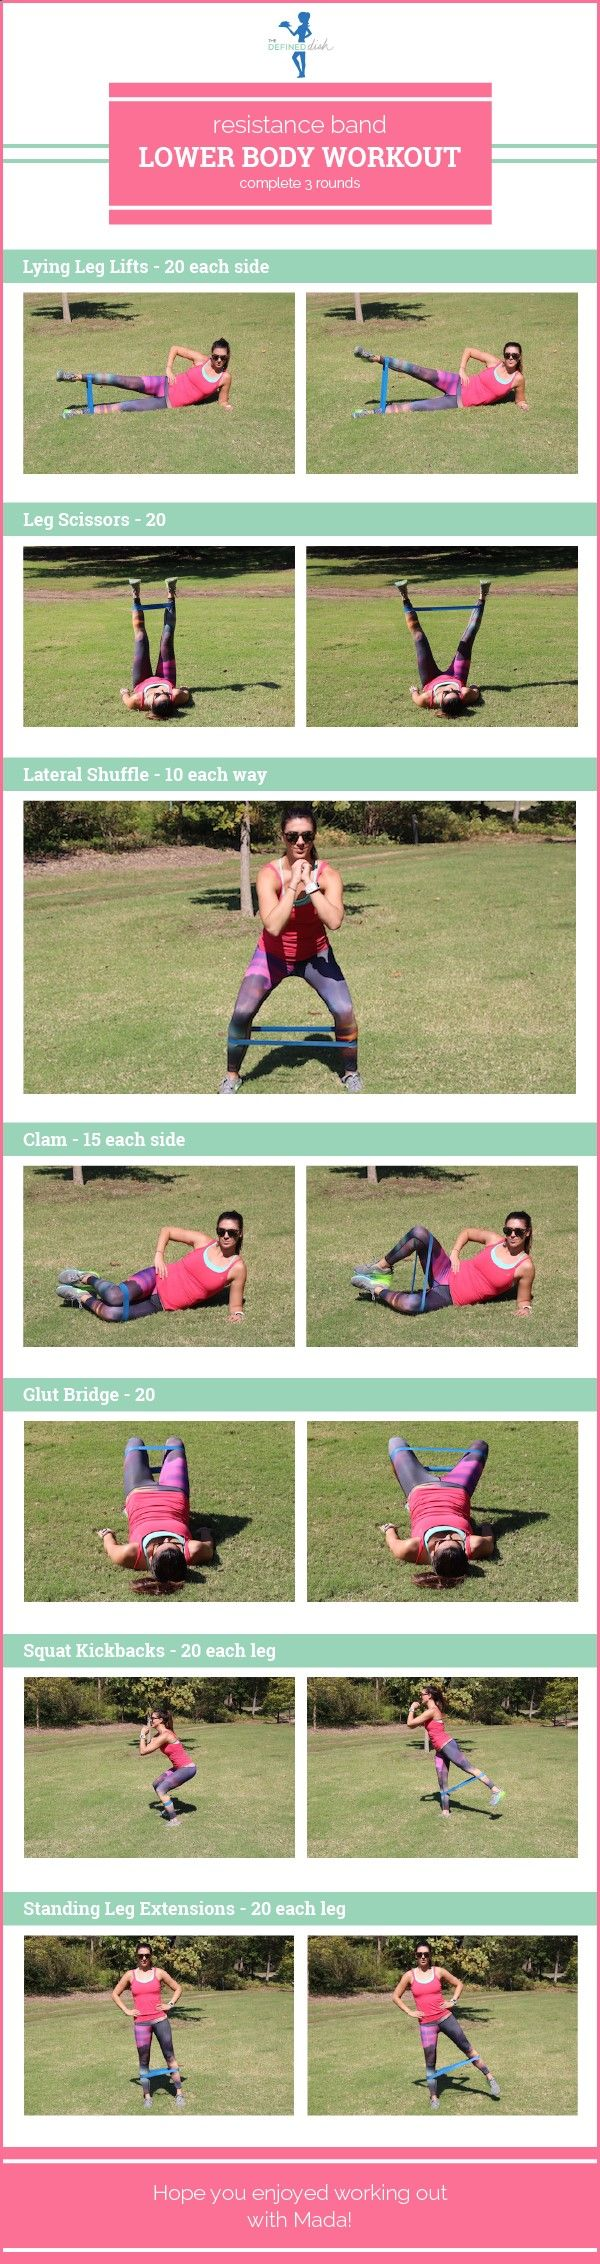 Yoga Fitness Flat Belly Resistance Band Lower Body Workout | The Defined Dish - There are many alternatives to get a flat stomach and among them are various yoga poses.